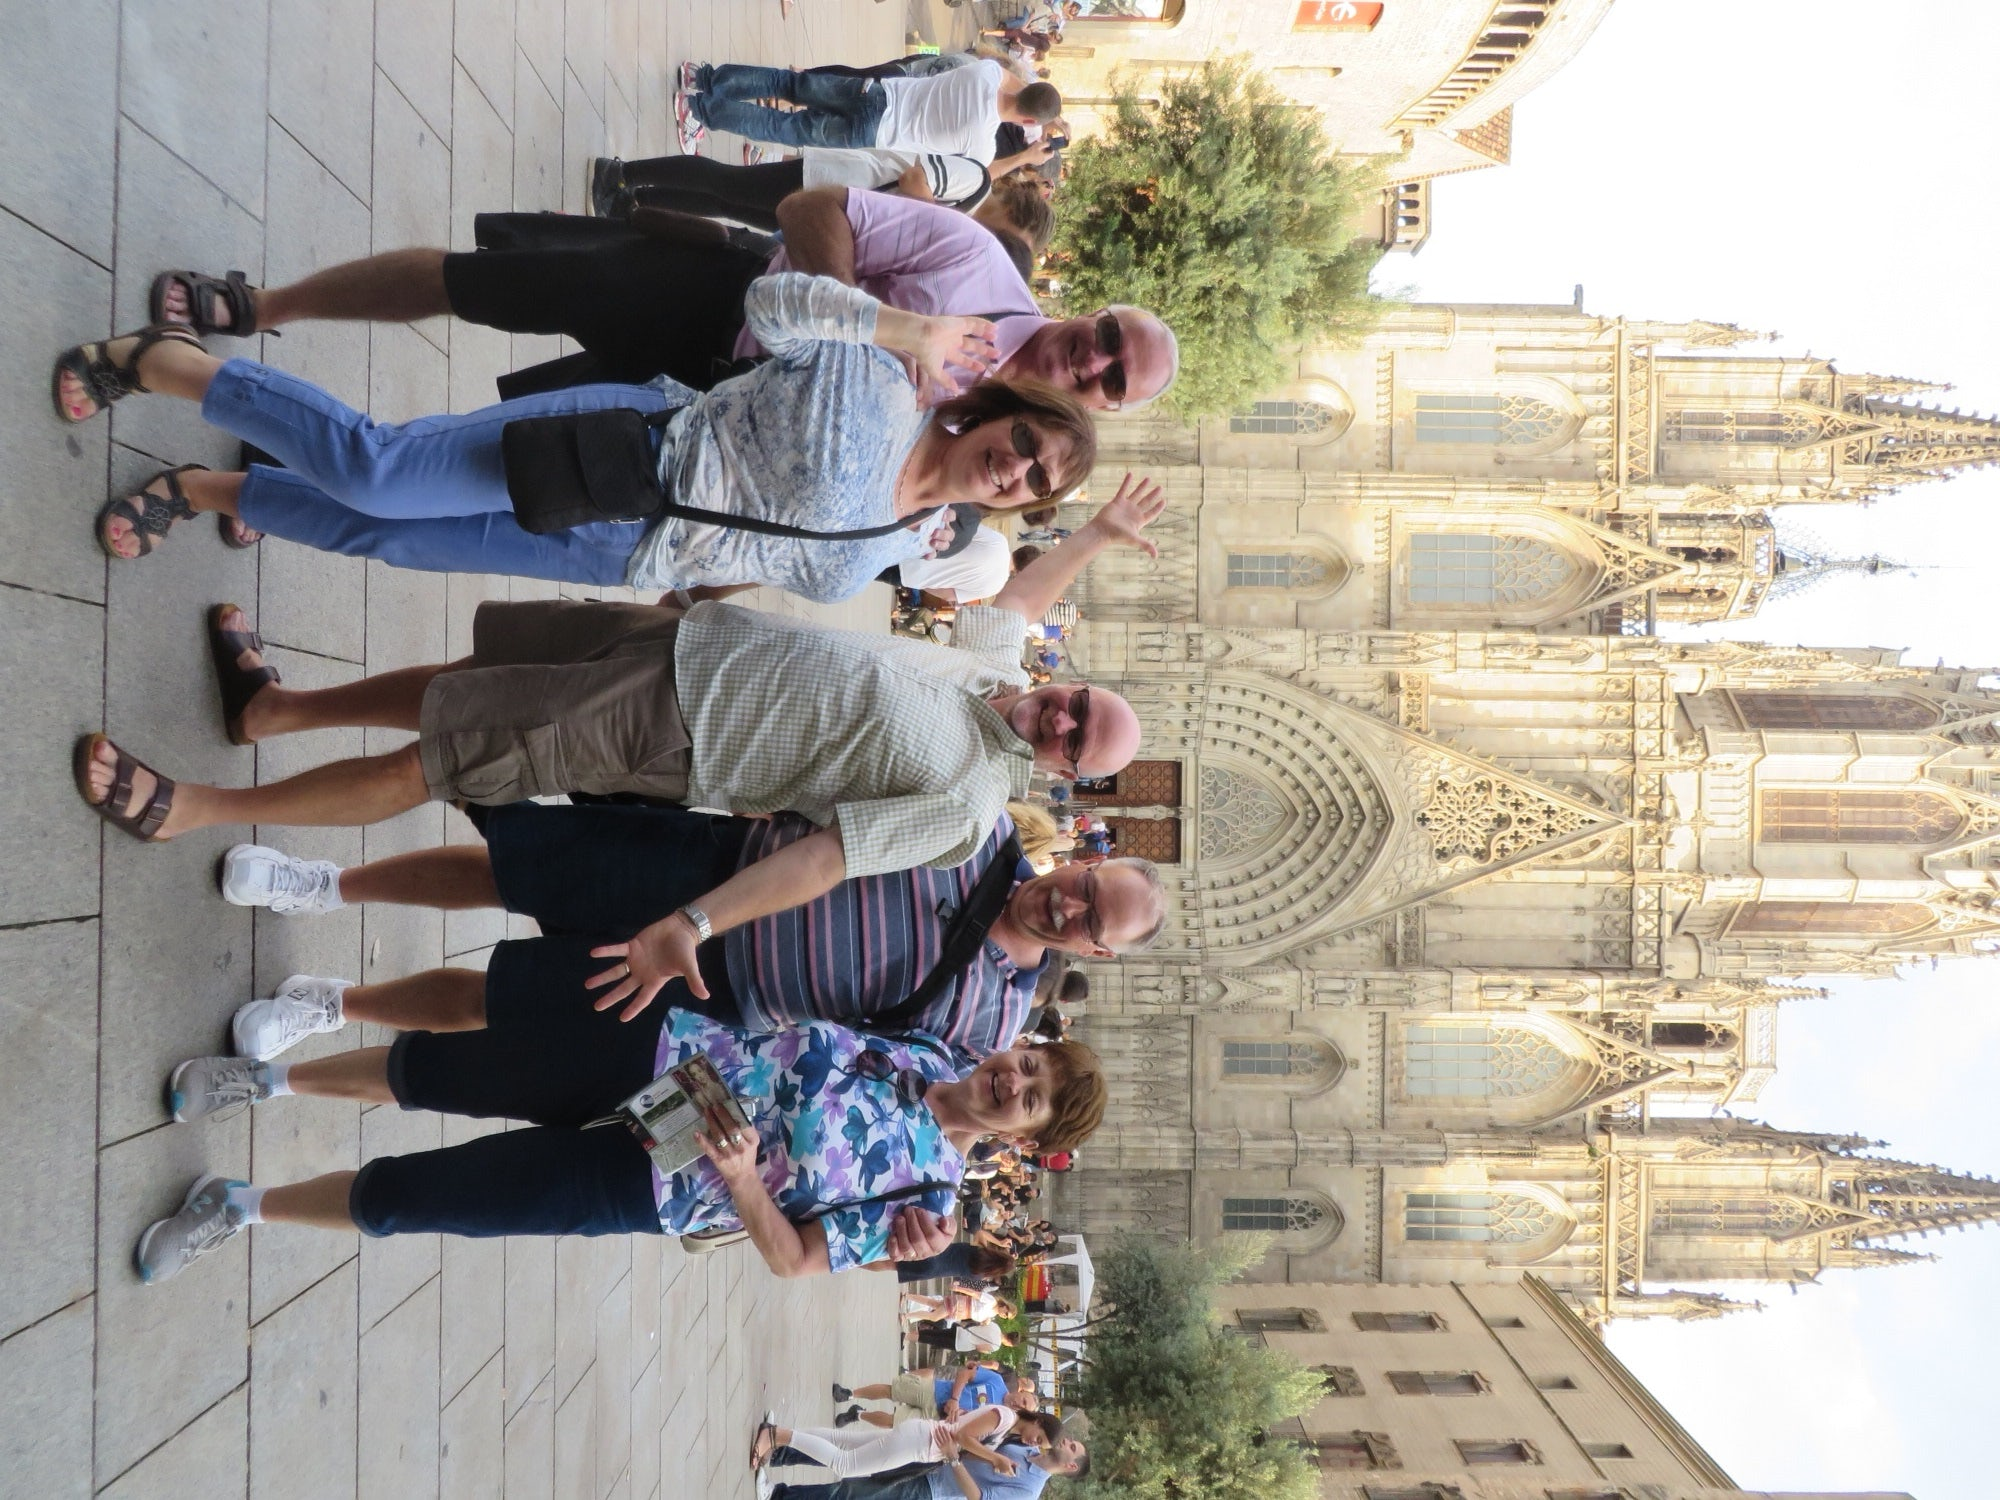 Our Carefree Journeys group in Barcelona, Spain